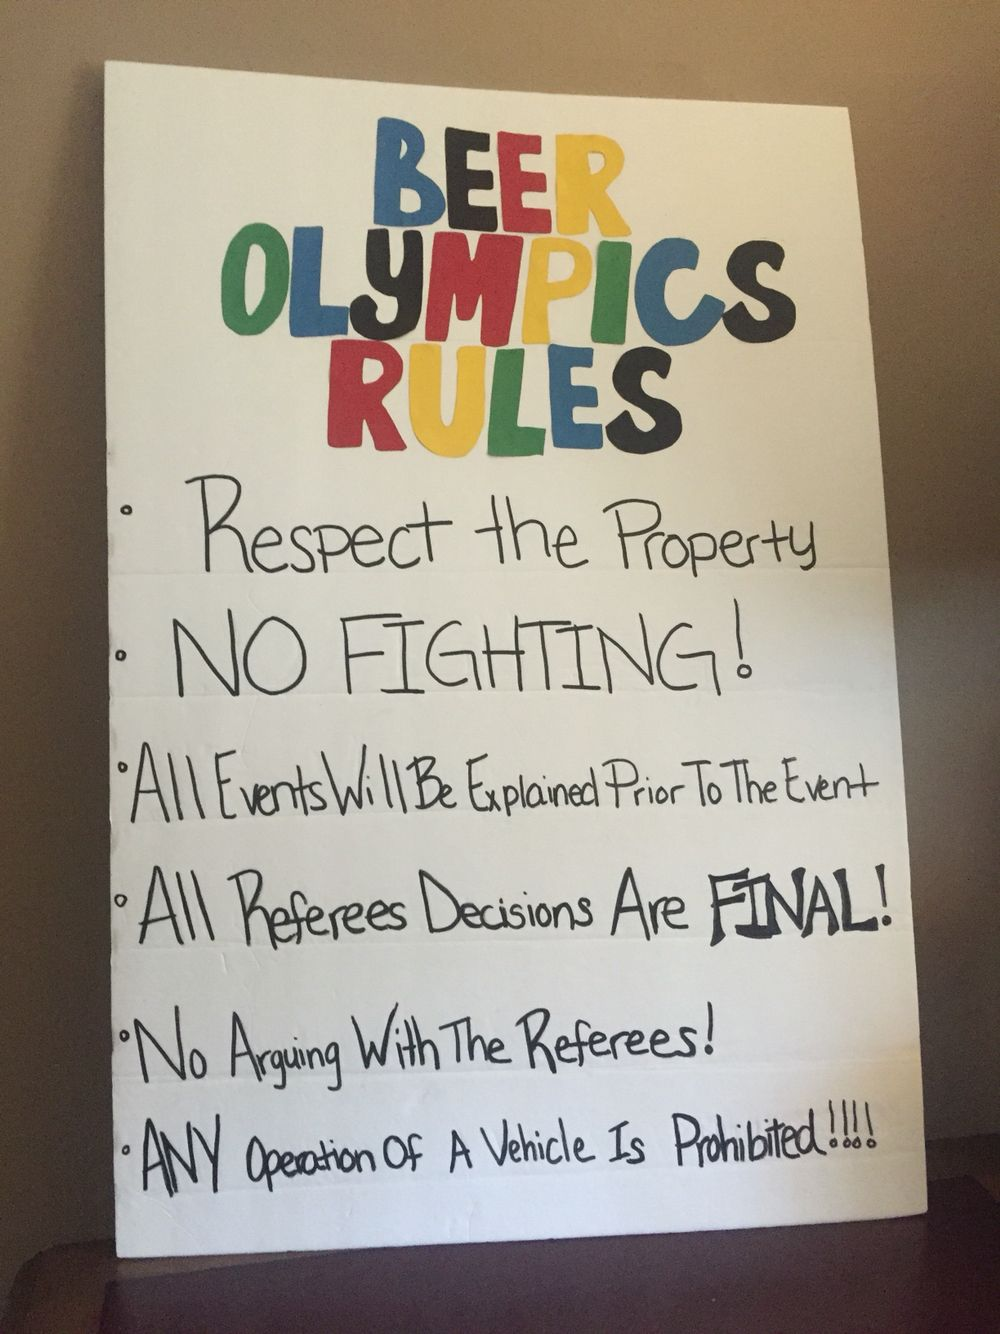 Have a visual reminder for participants … Beer olympic